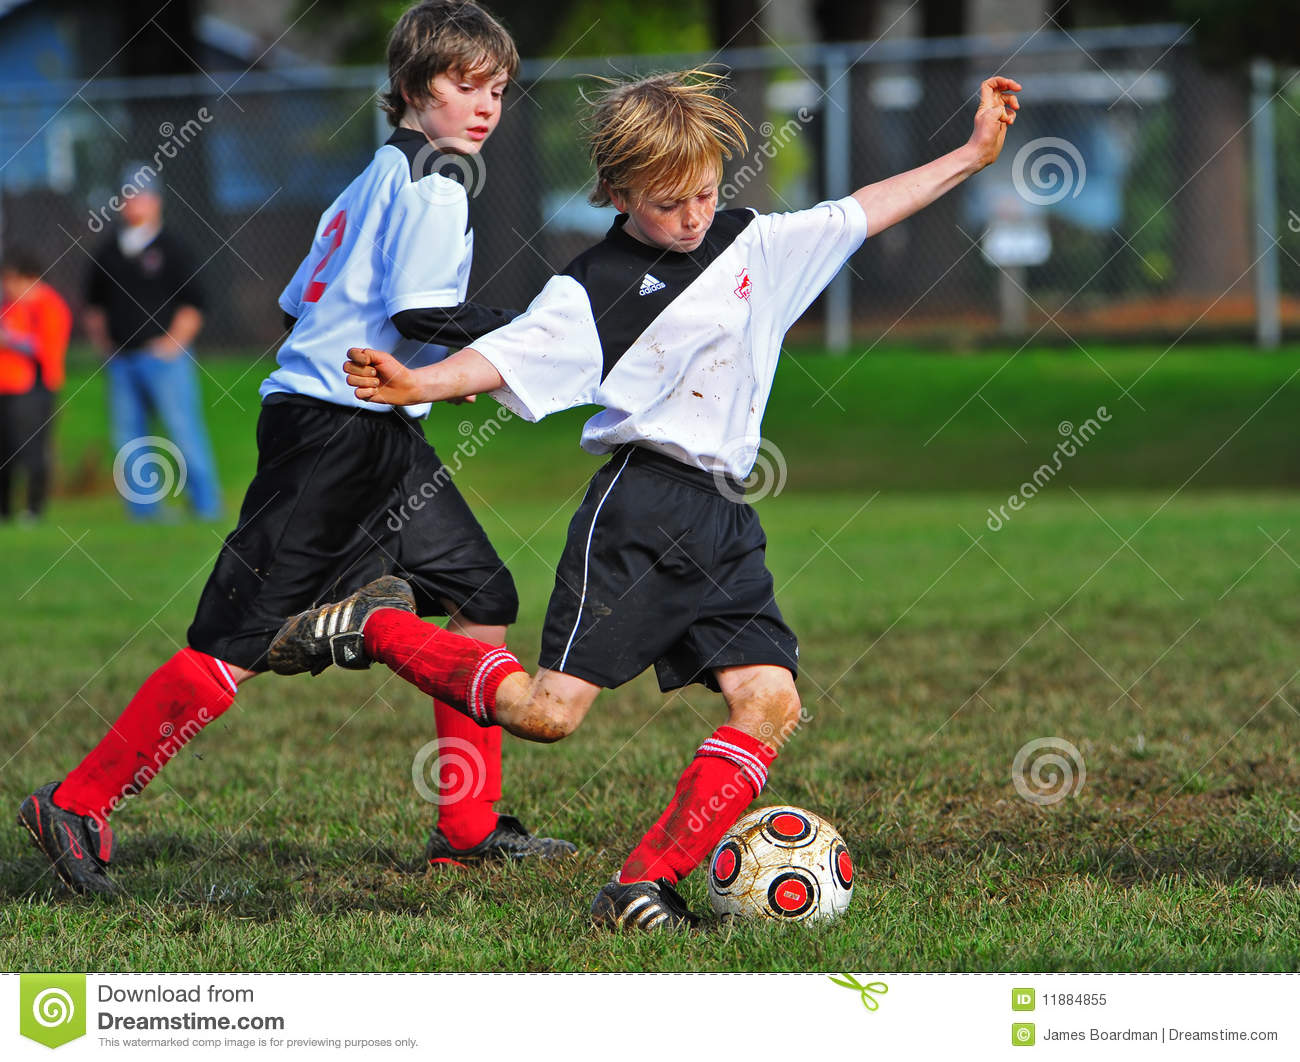 how to play youth soccer